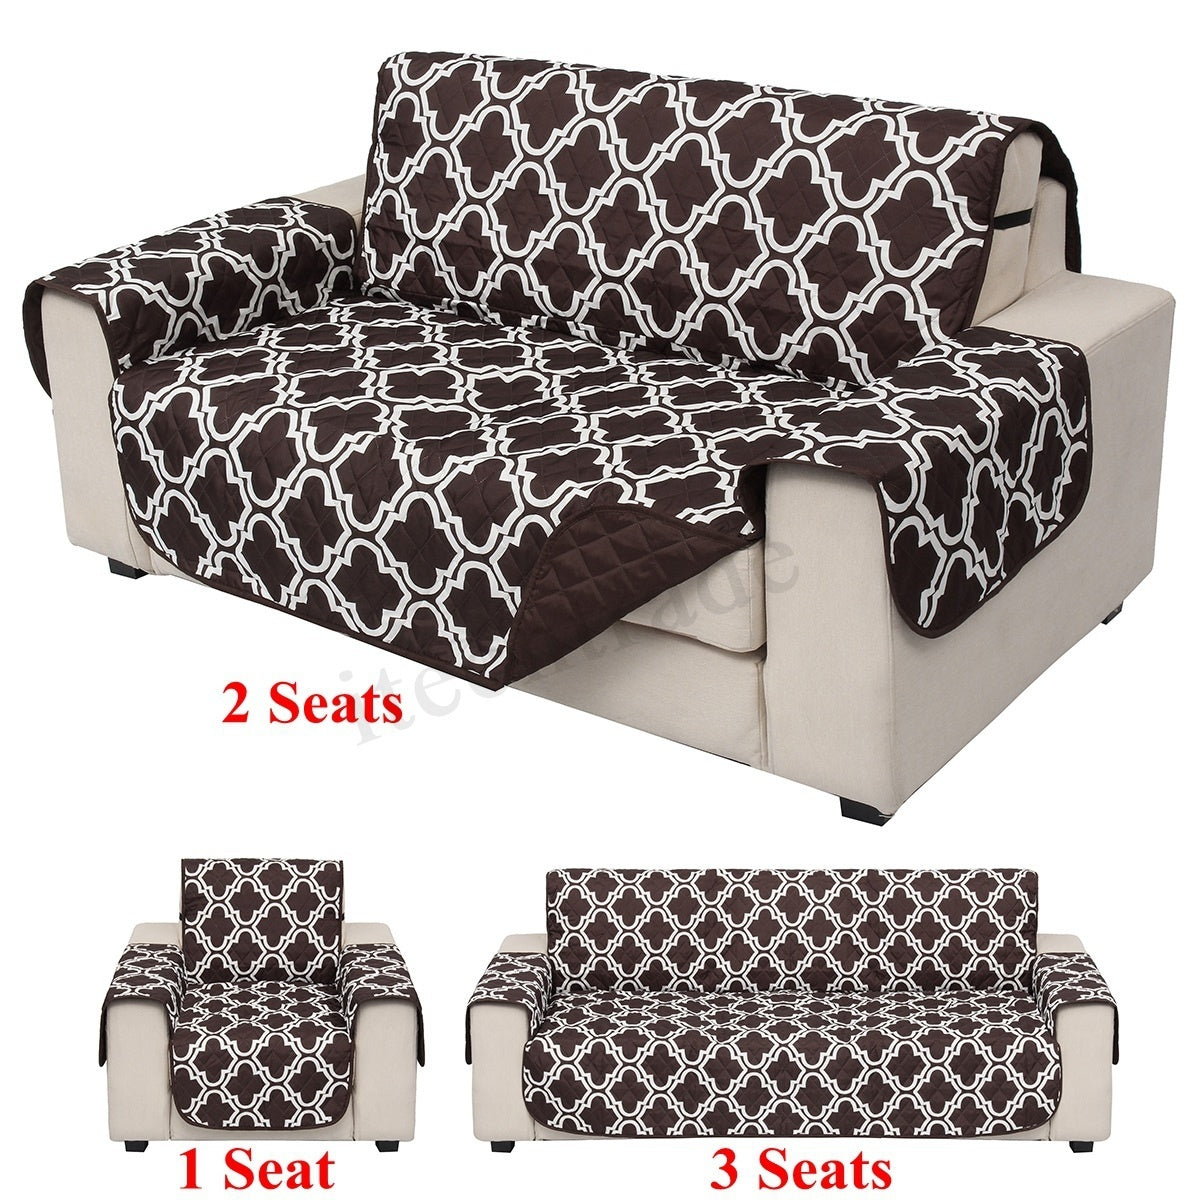 Tremendous Black Brown Home Furniturer Single Twin Triple Seater Sofa Slipcovers Art Stretch Elastic Fabric Sofa Cover Pet Dog Cat Gmtry Best Dining Table And Chair Ideas Images Gmtryco